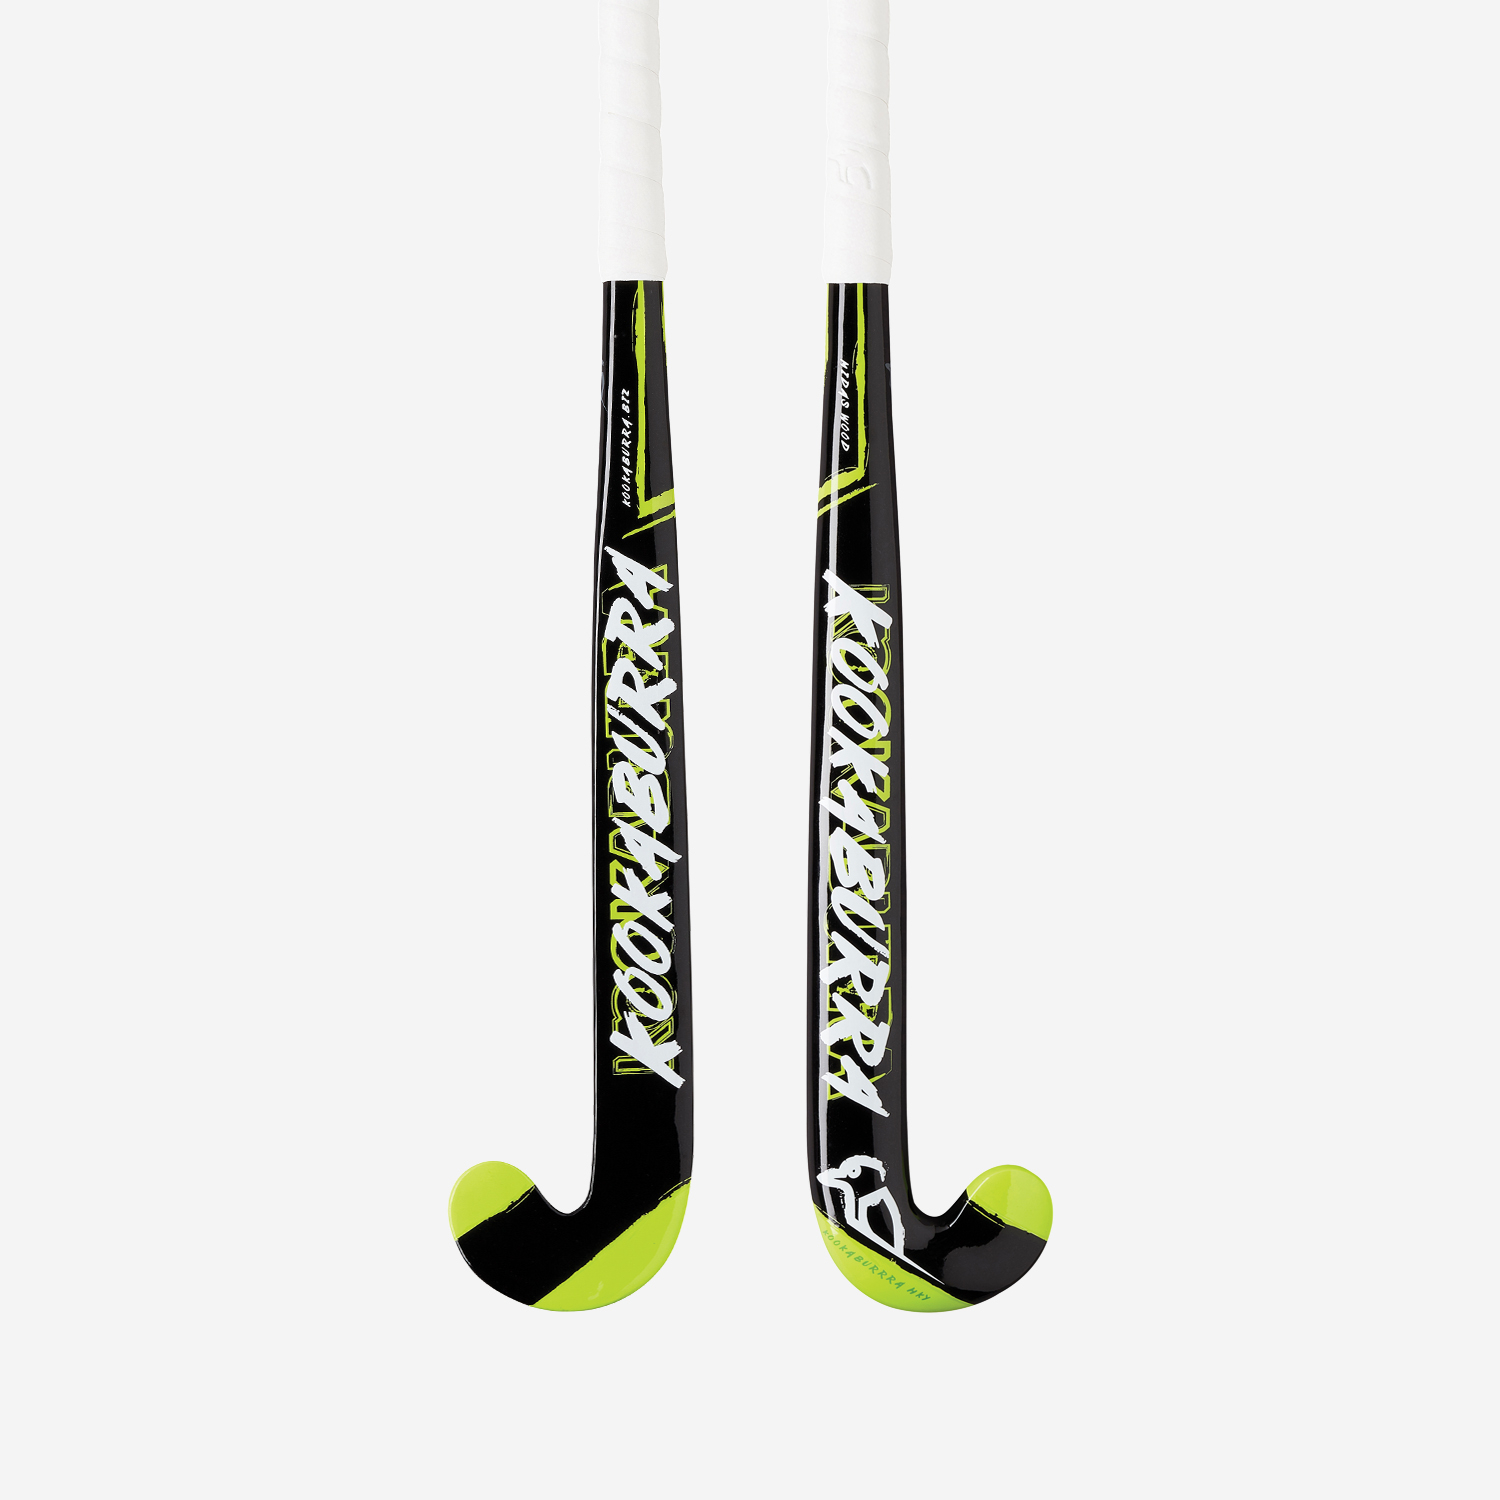 Midas Wood Hockey Stick